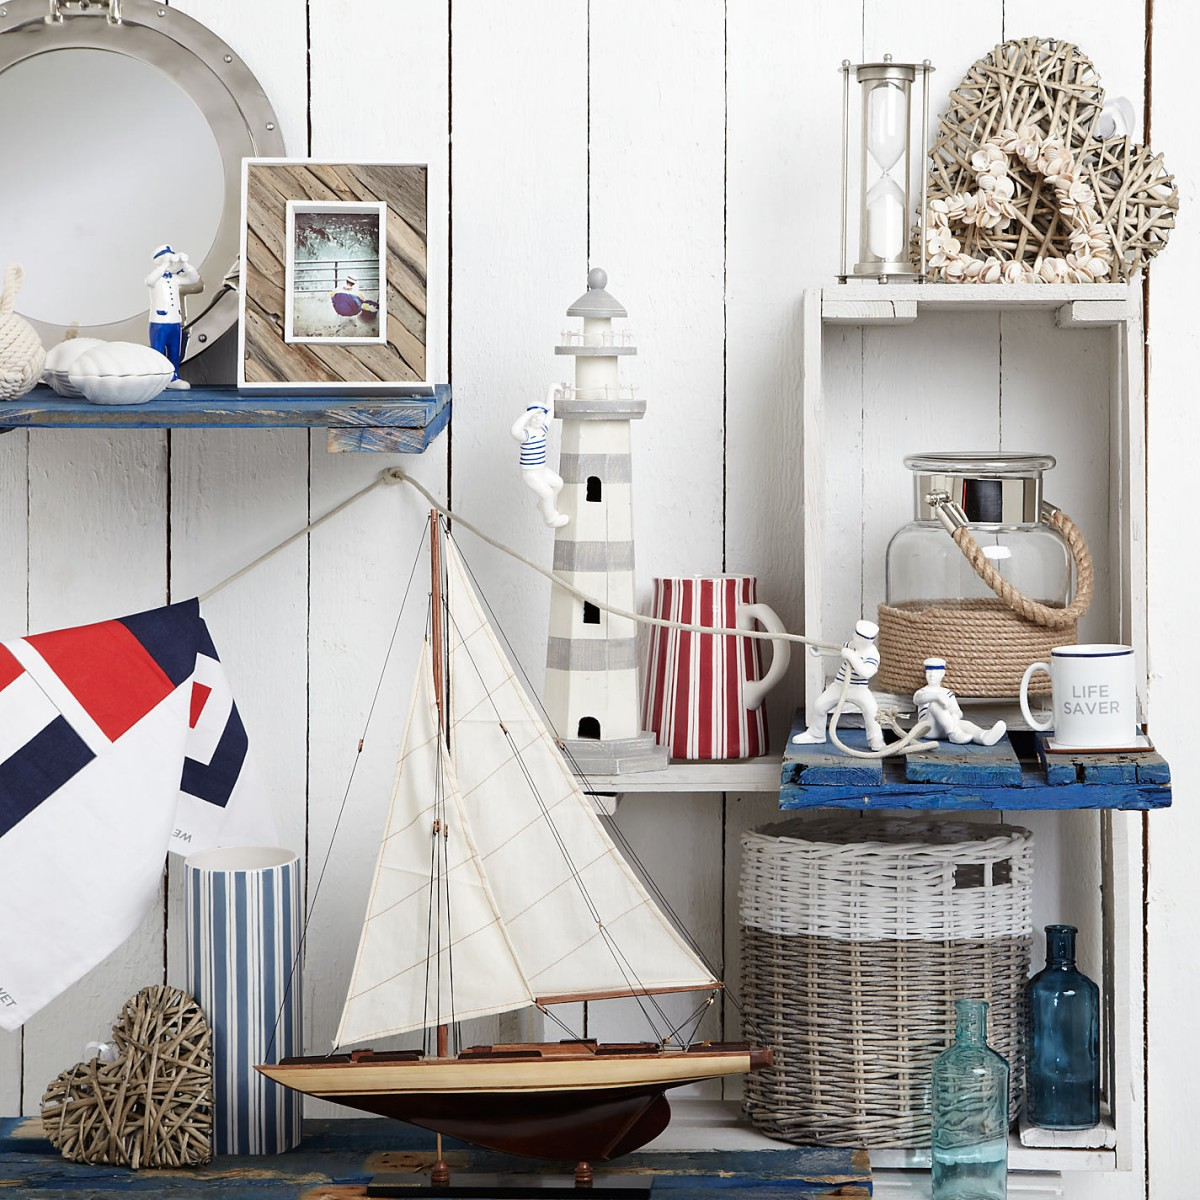 Nautical themed knick knacks (lewismoten).